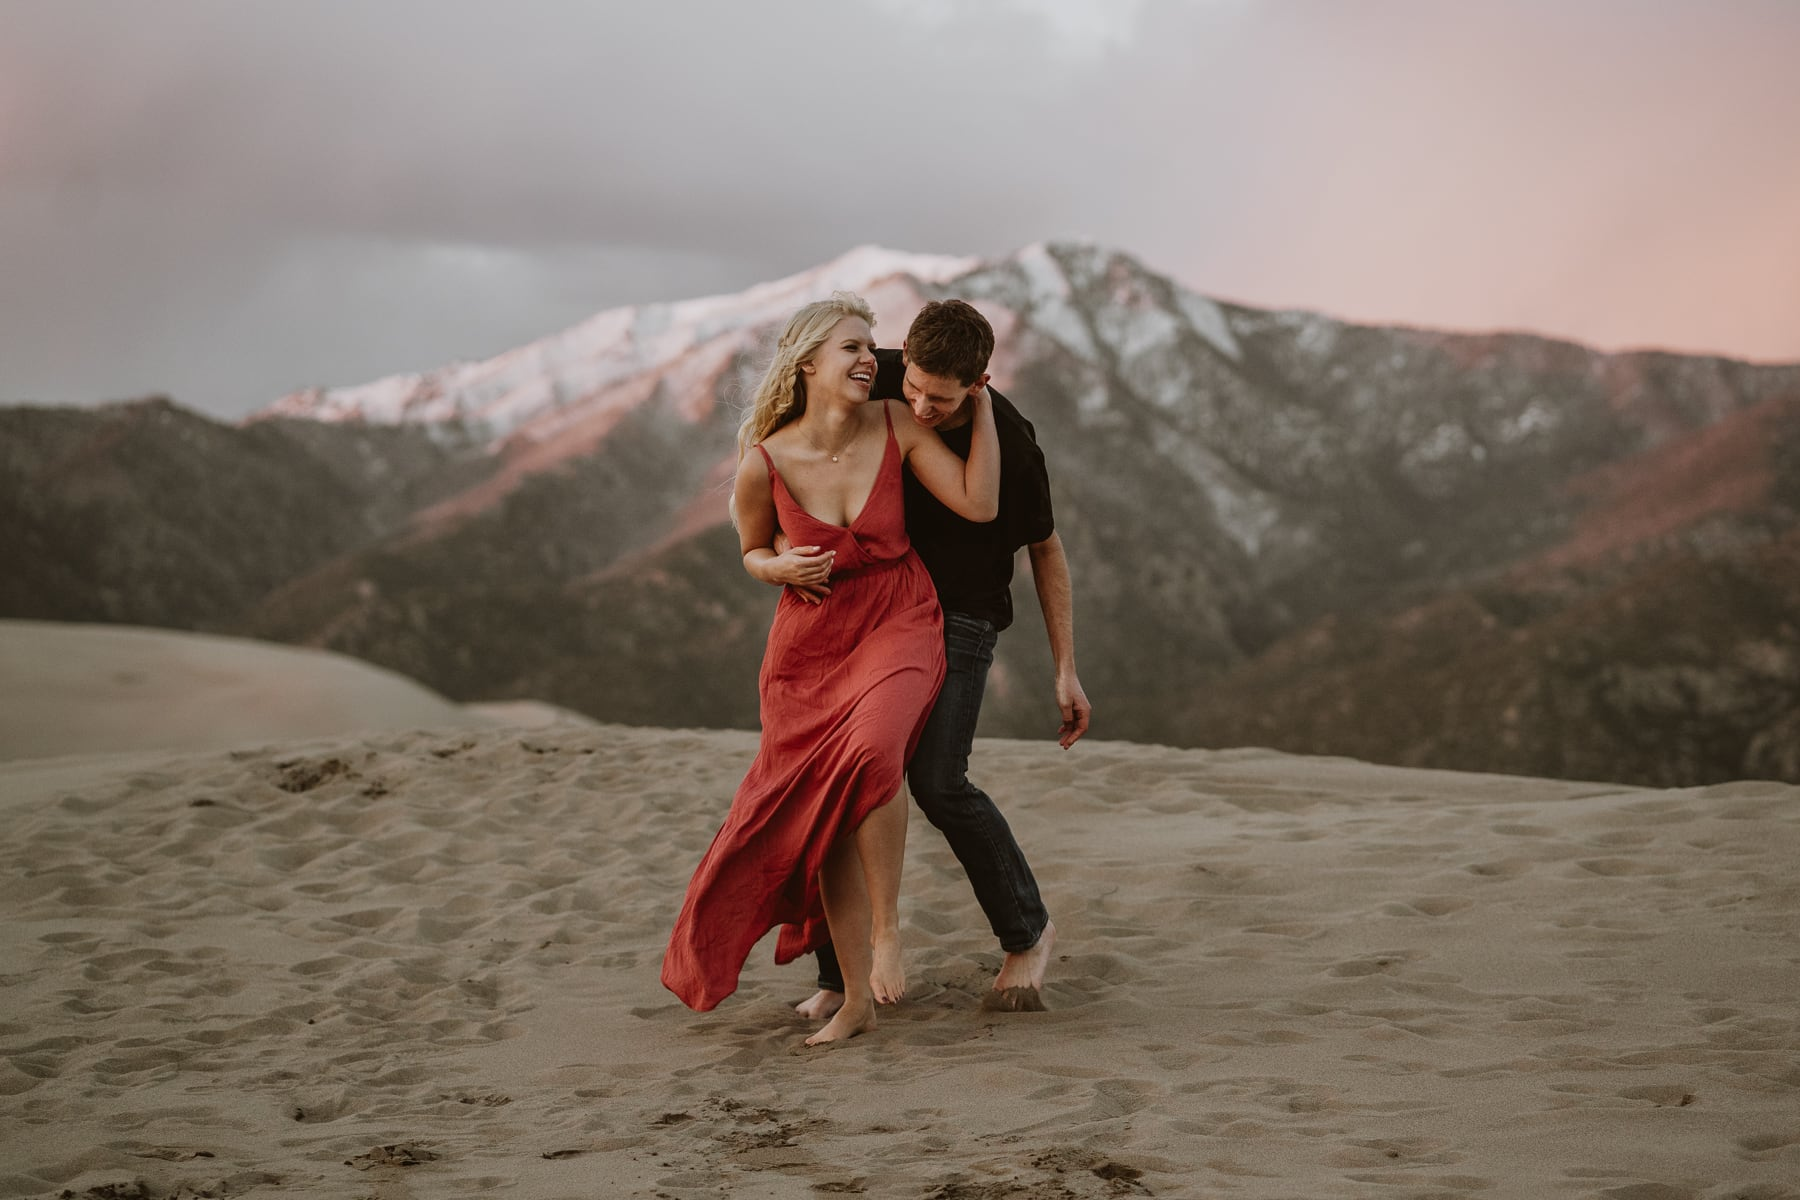 Couple dances and laughs on top of a sand dune at sunset